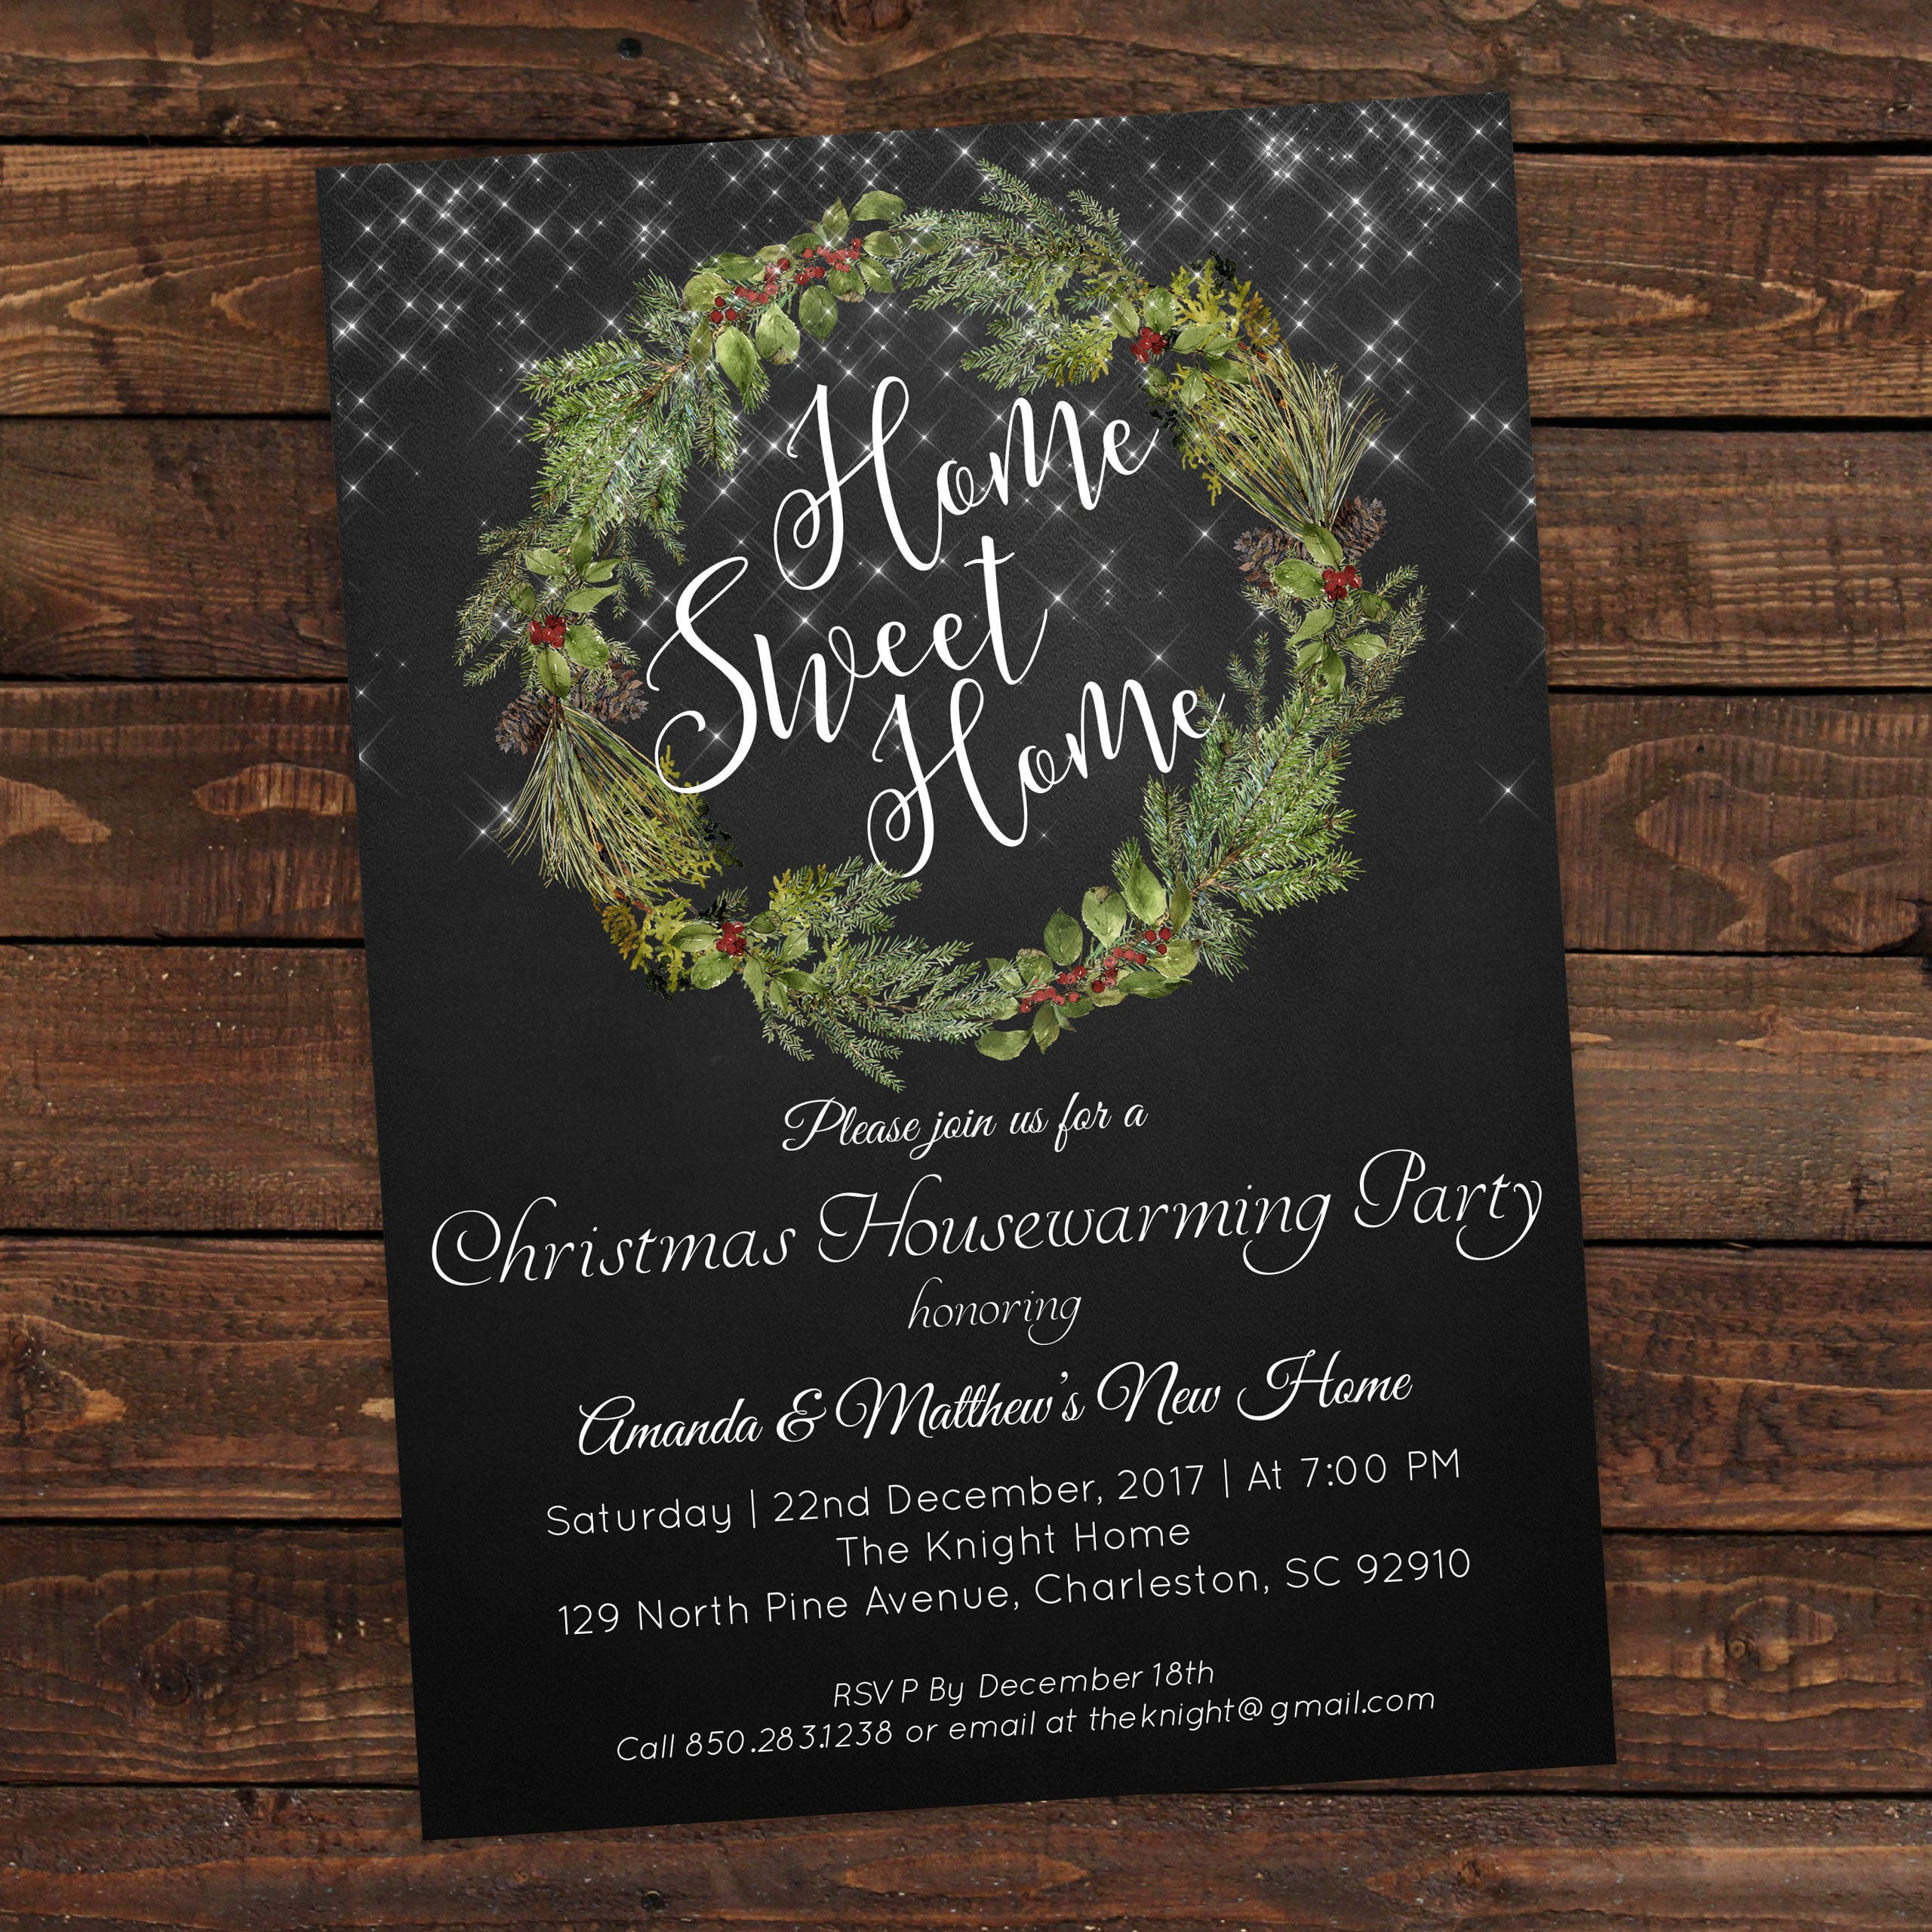 Housewarming party invitation Christmas party invitations